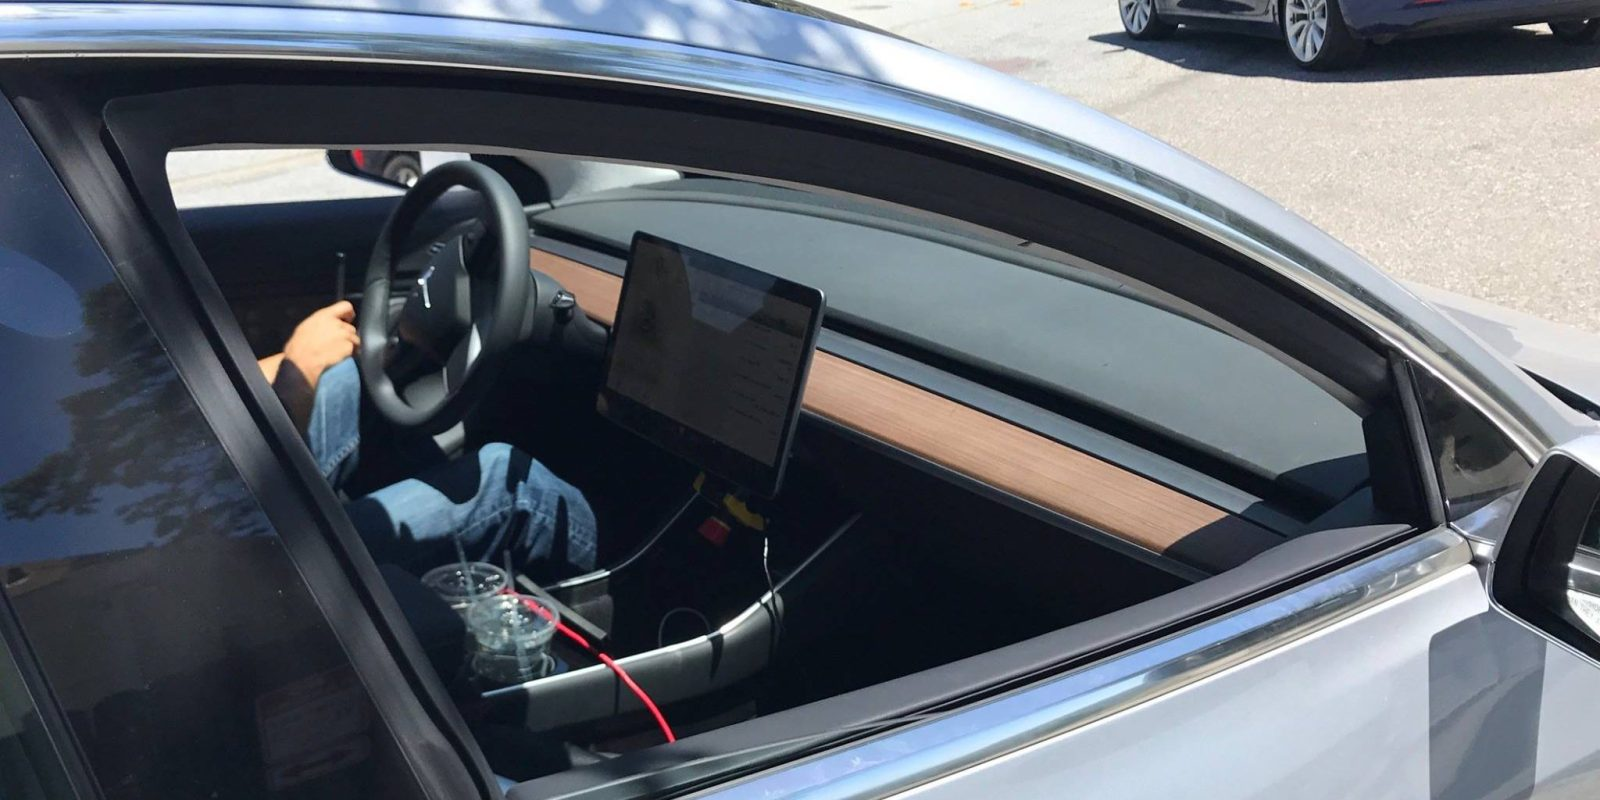 Tesla Model 3: best look at the interior and Model 3's unique